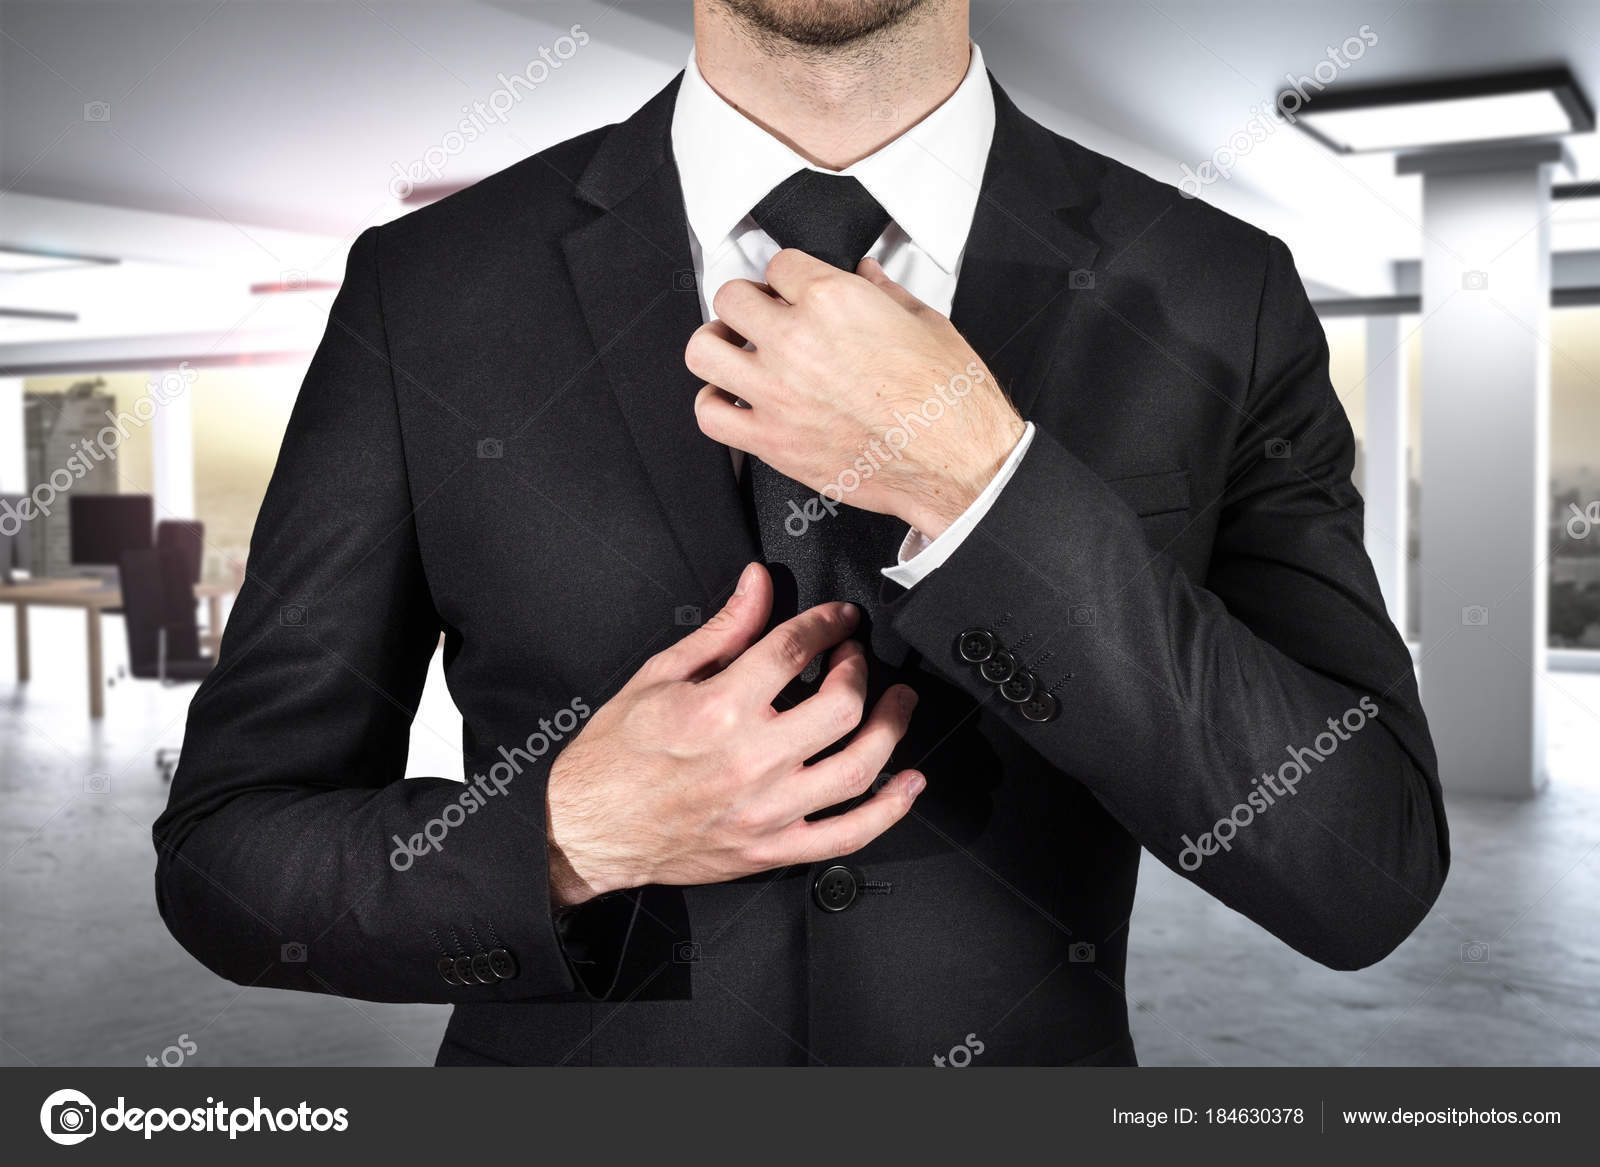 businessman in black suit ties his black tie in modern office photo by imilian